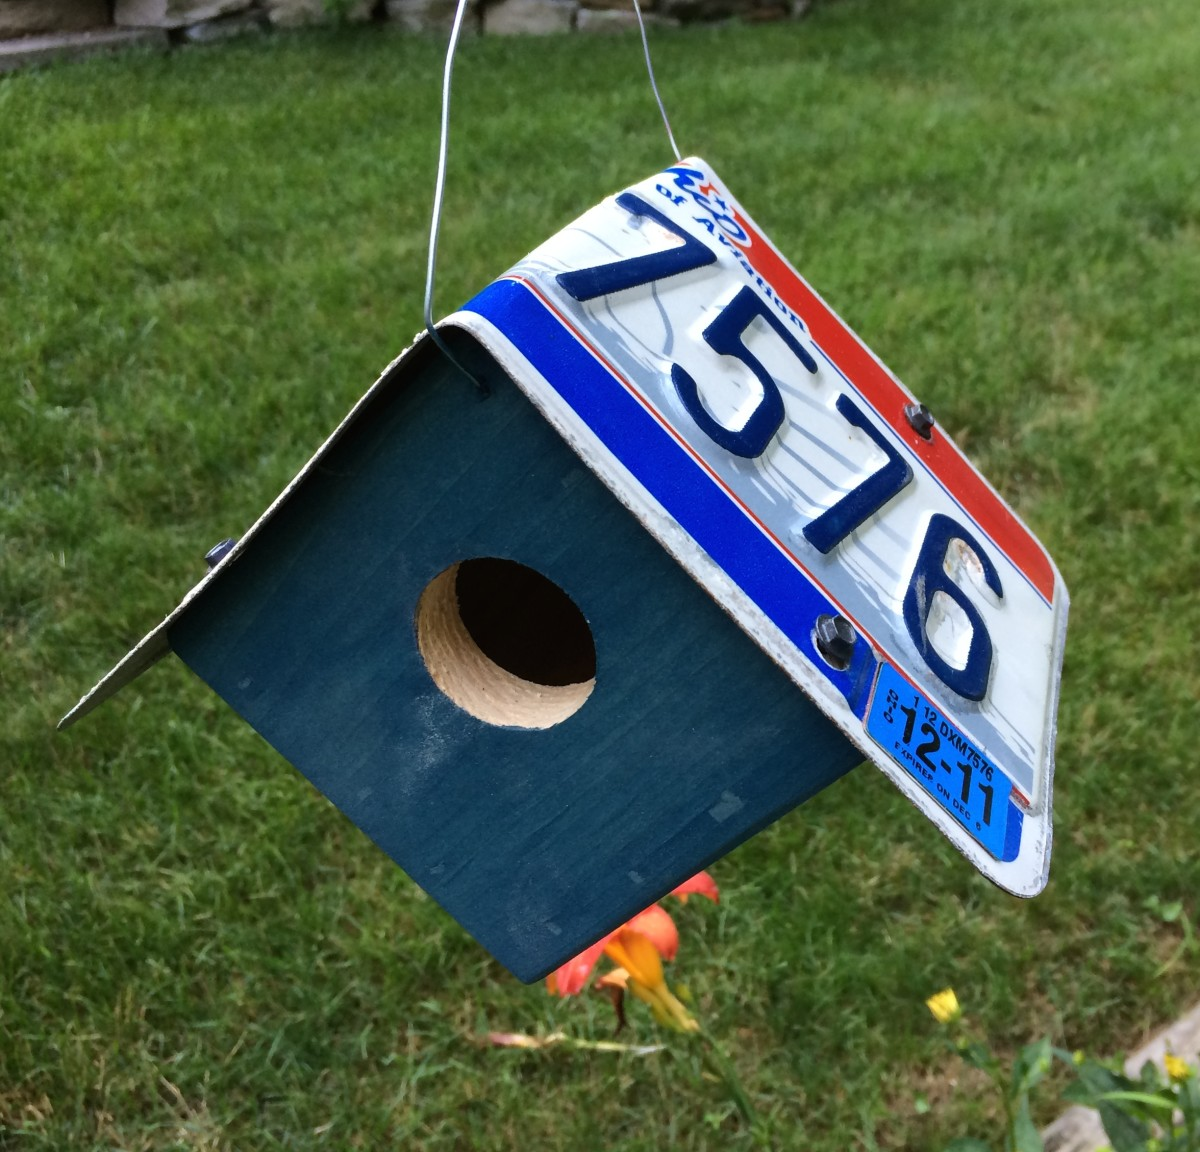 The Little Hanging Birdhouse